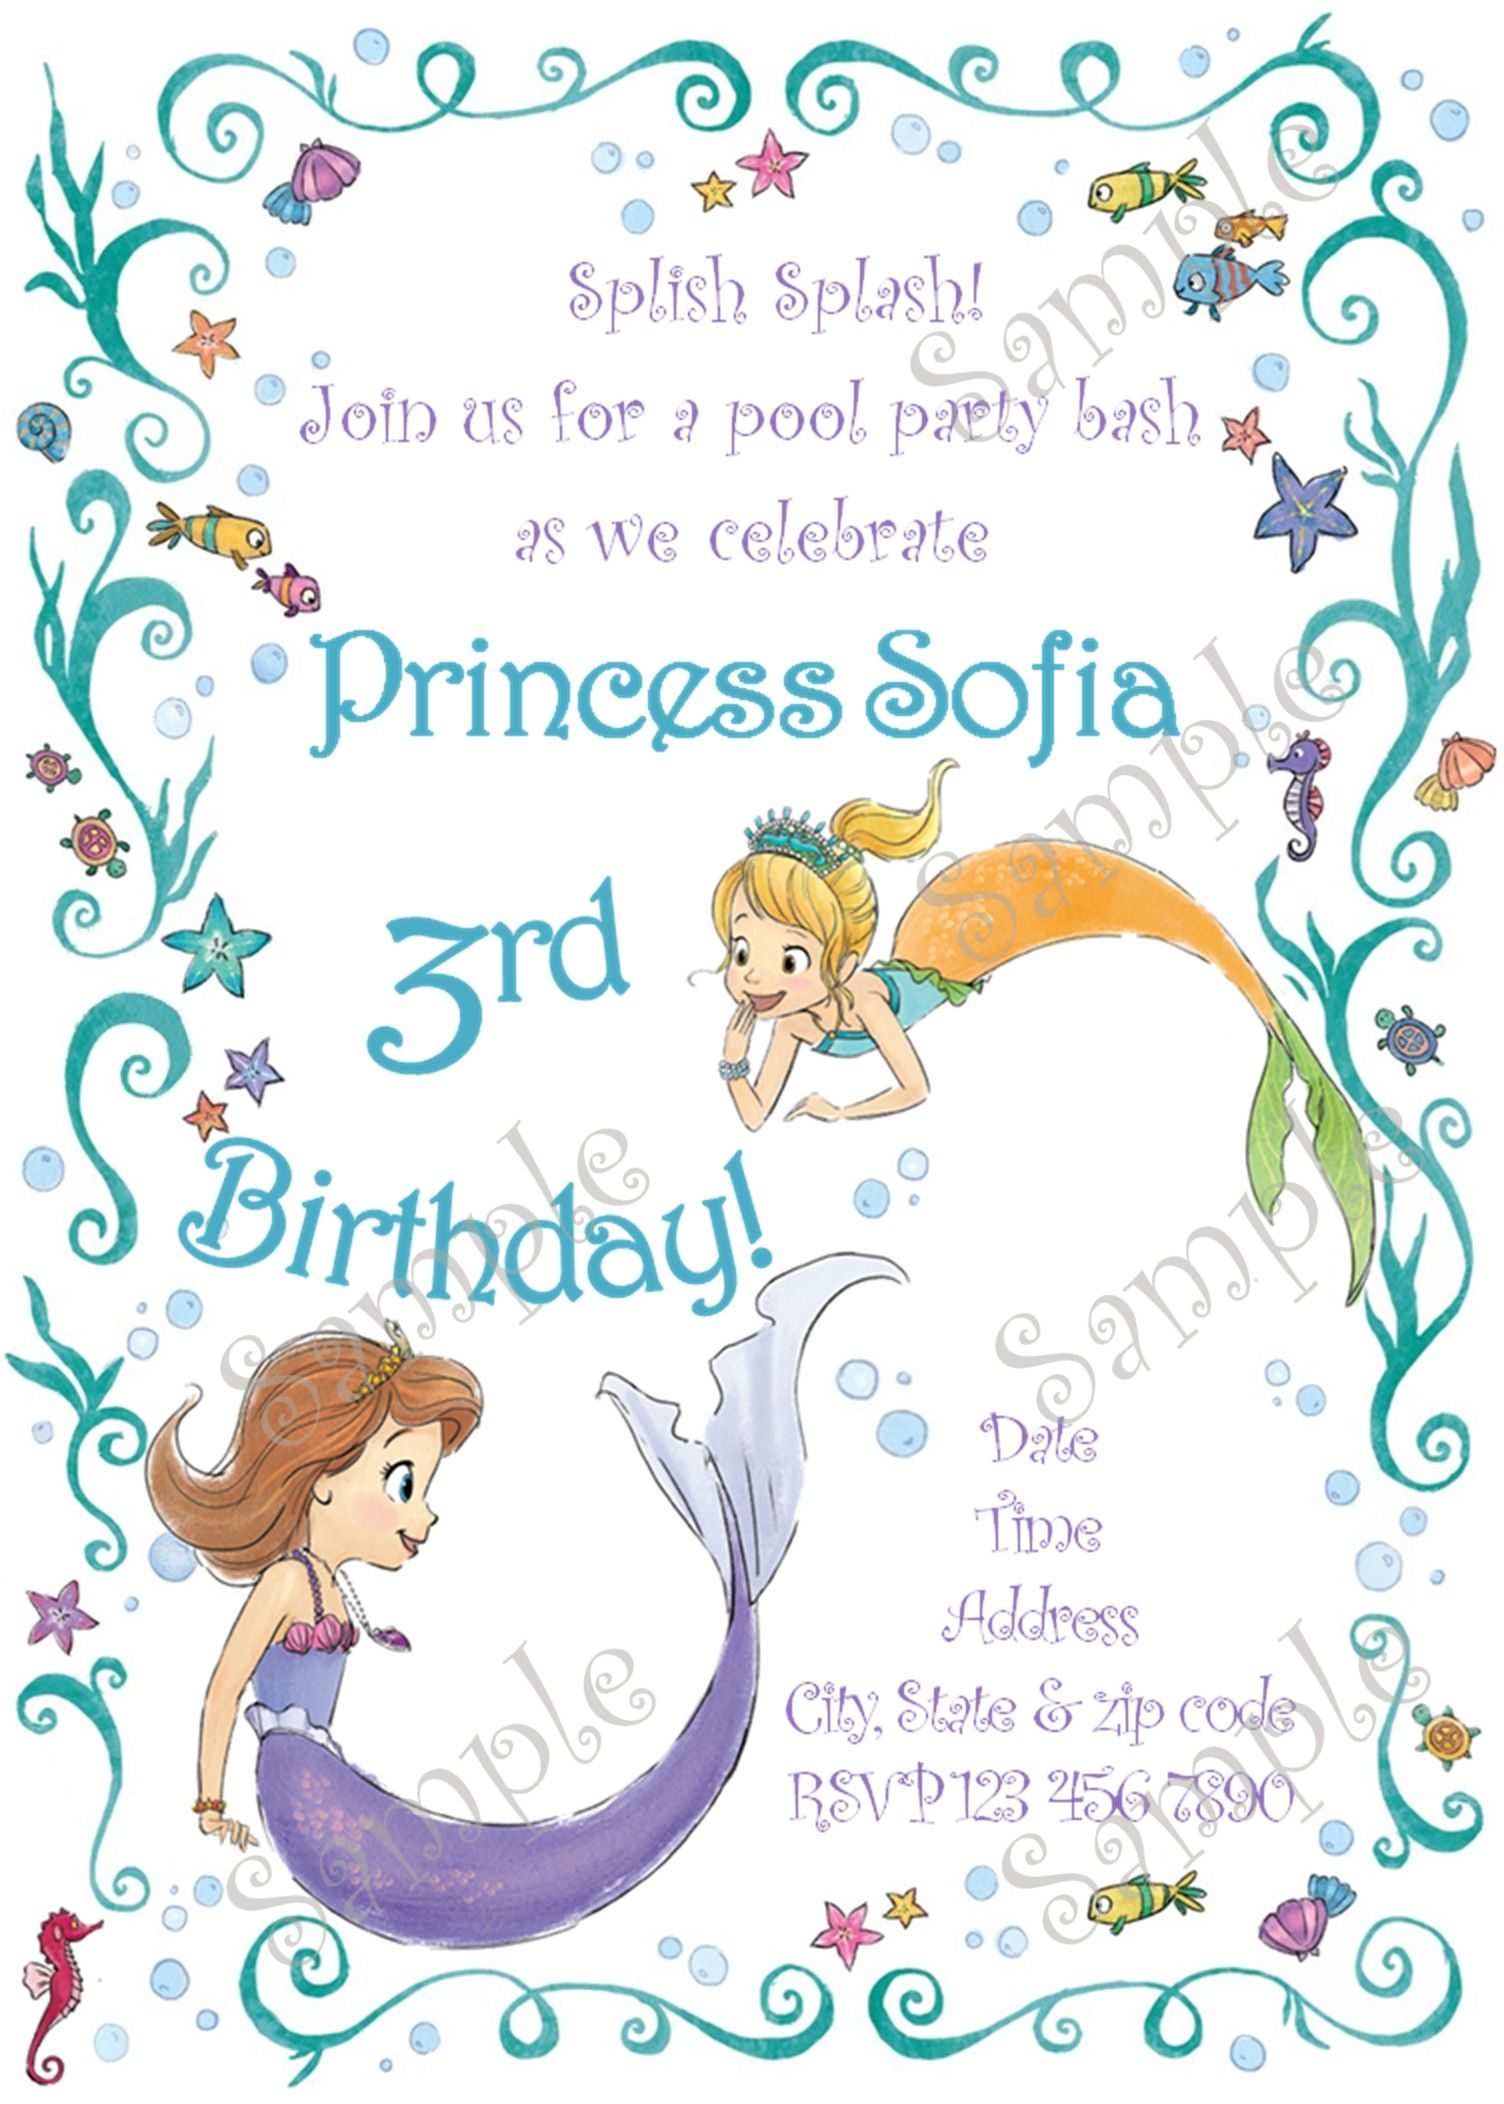 Sofia the first birthday party invitation Sofia the first pool